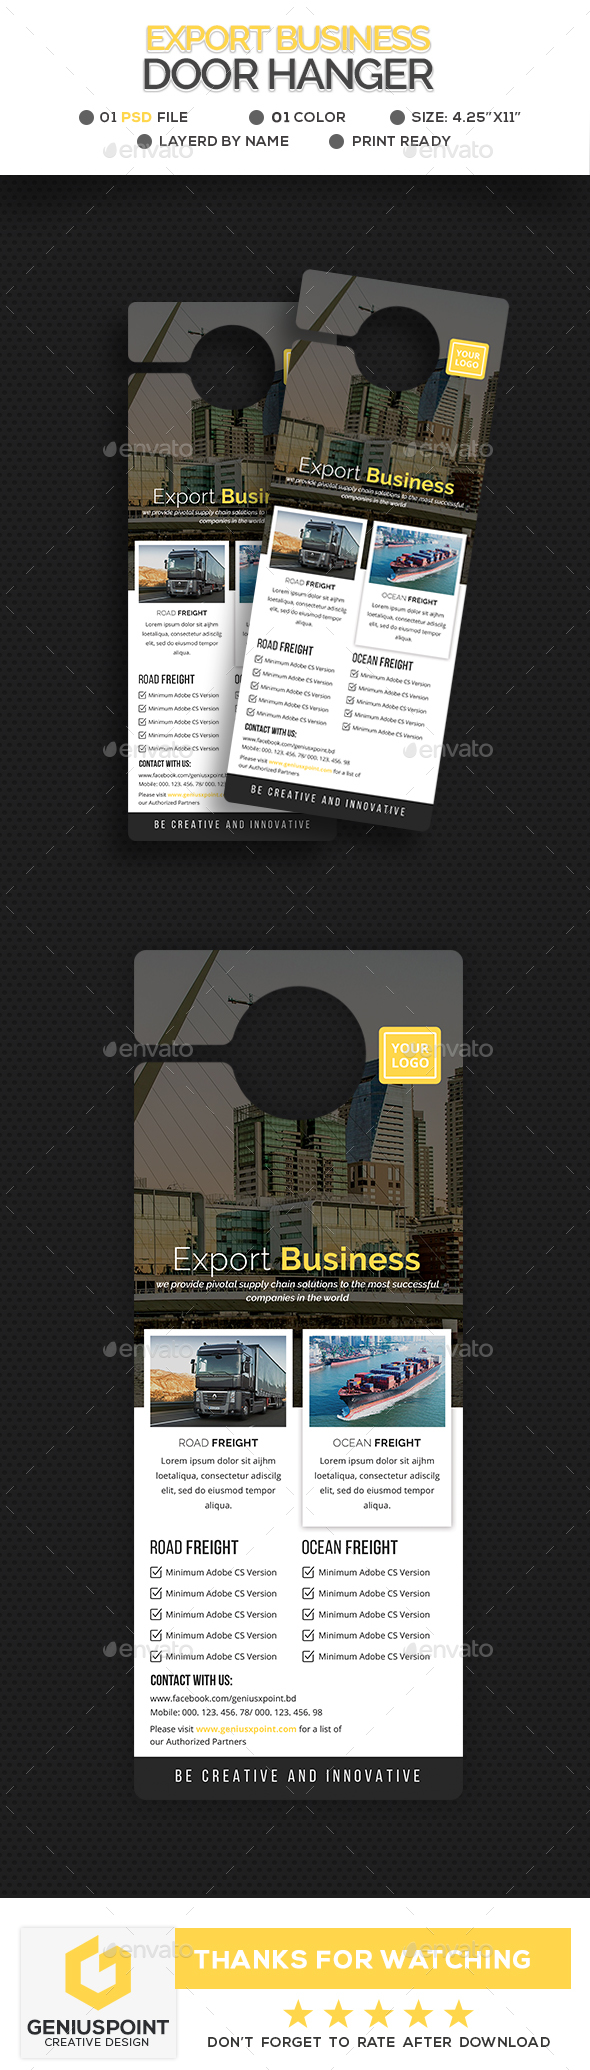 Export Business Door Hanger - Miscellaneous Print Templates